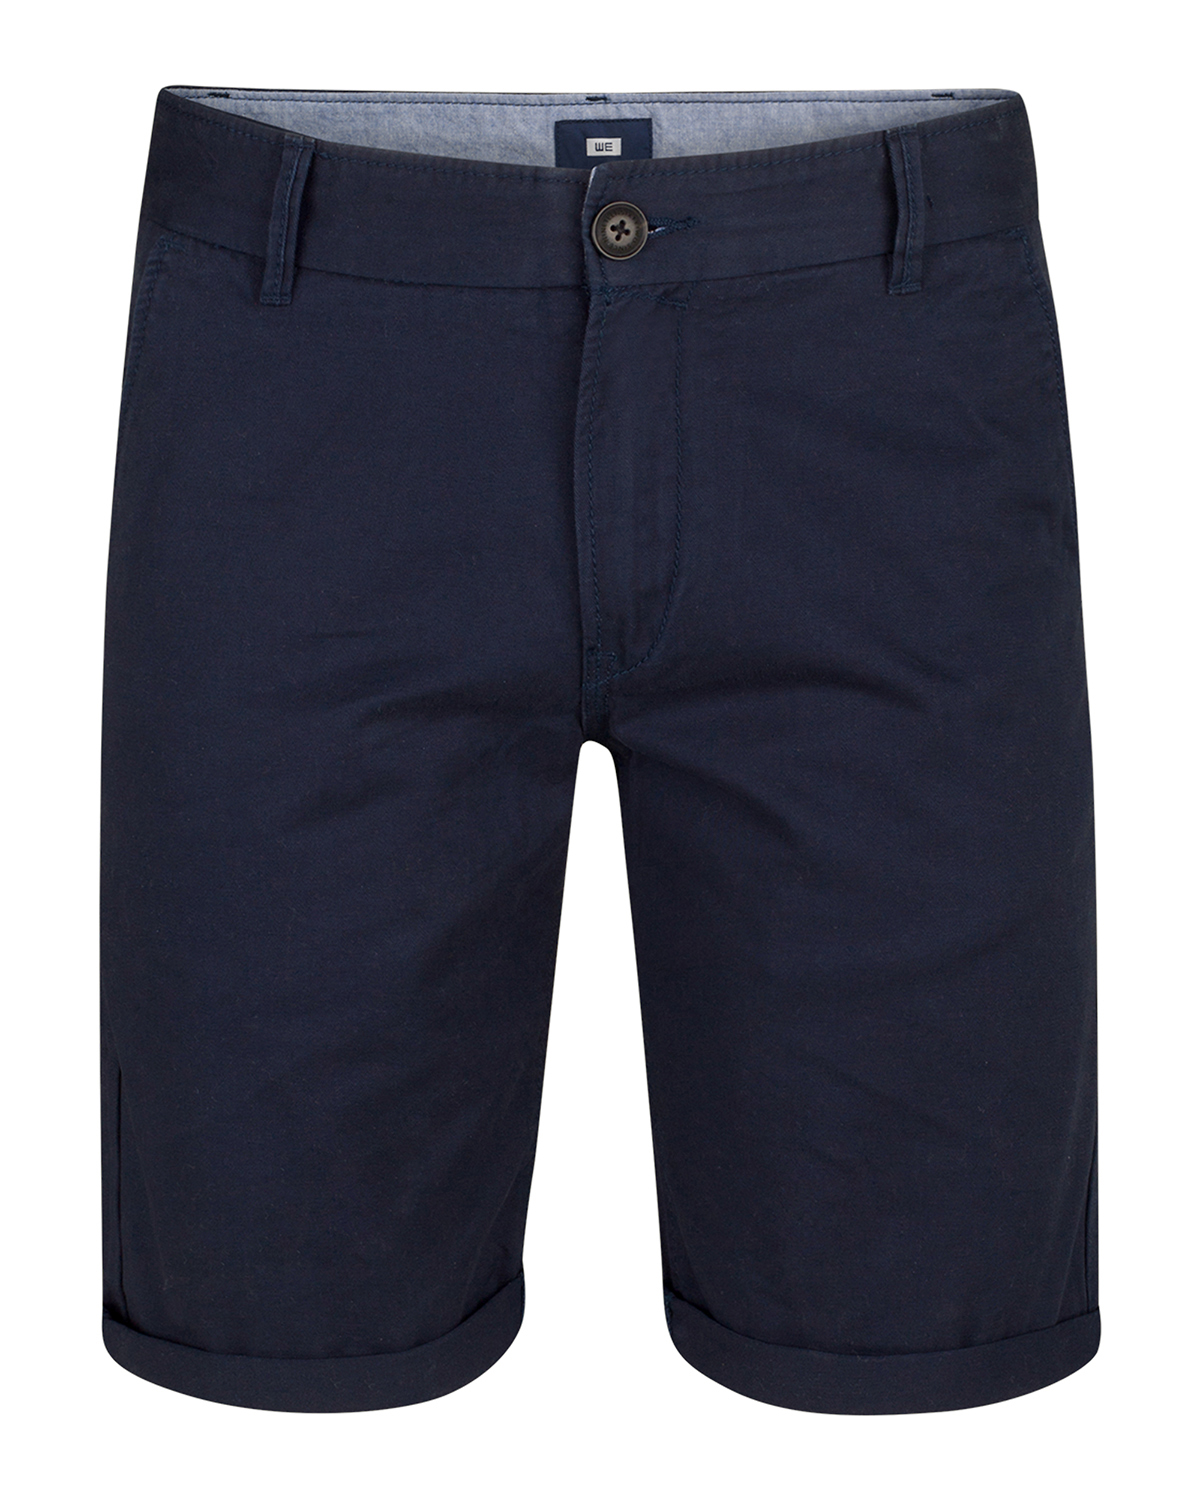 SHORT REGULAR FIT HOMME_SHORT REGULAR FIT HOMME, Bleu marine